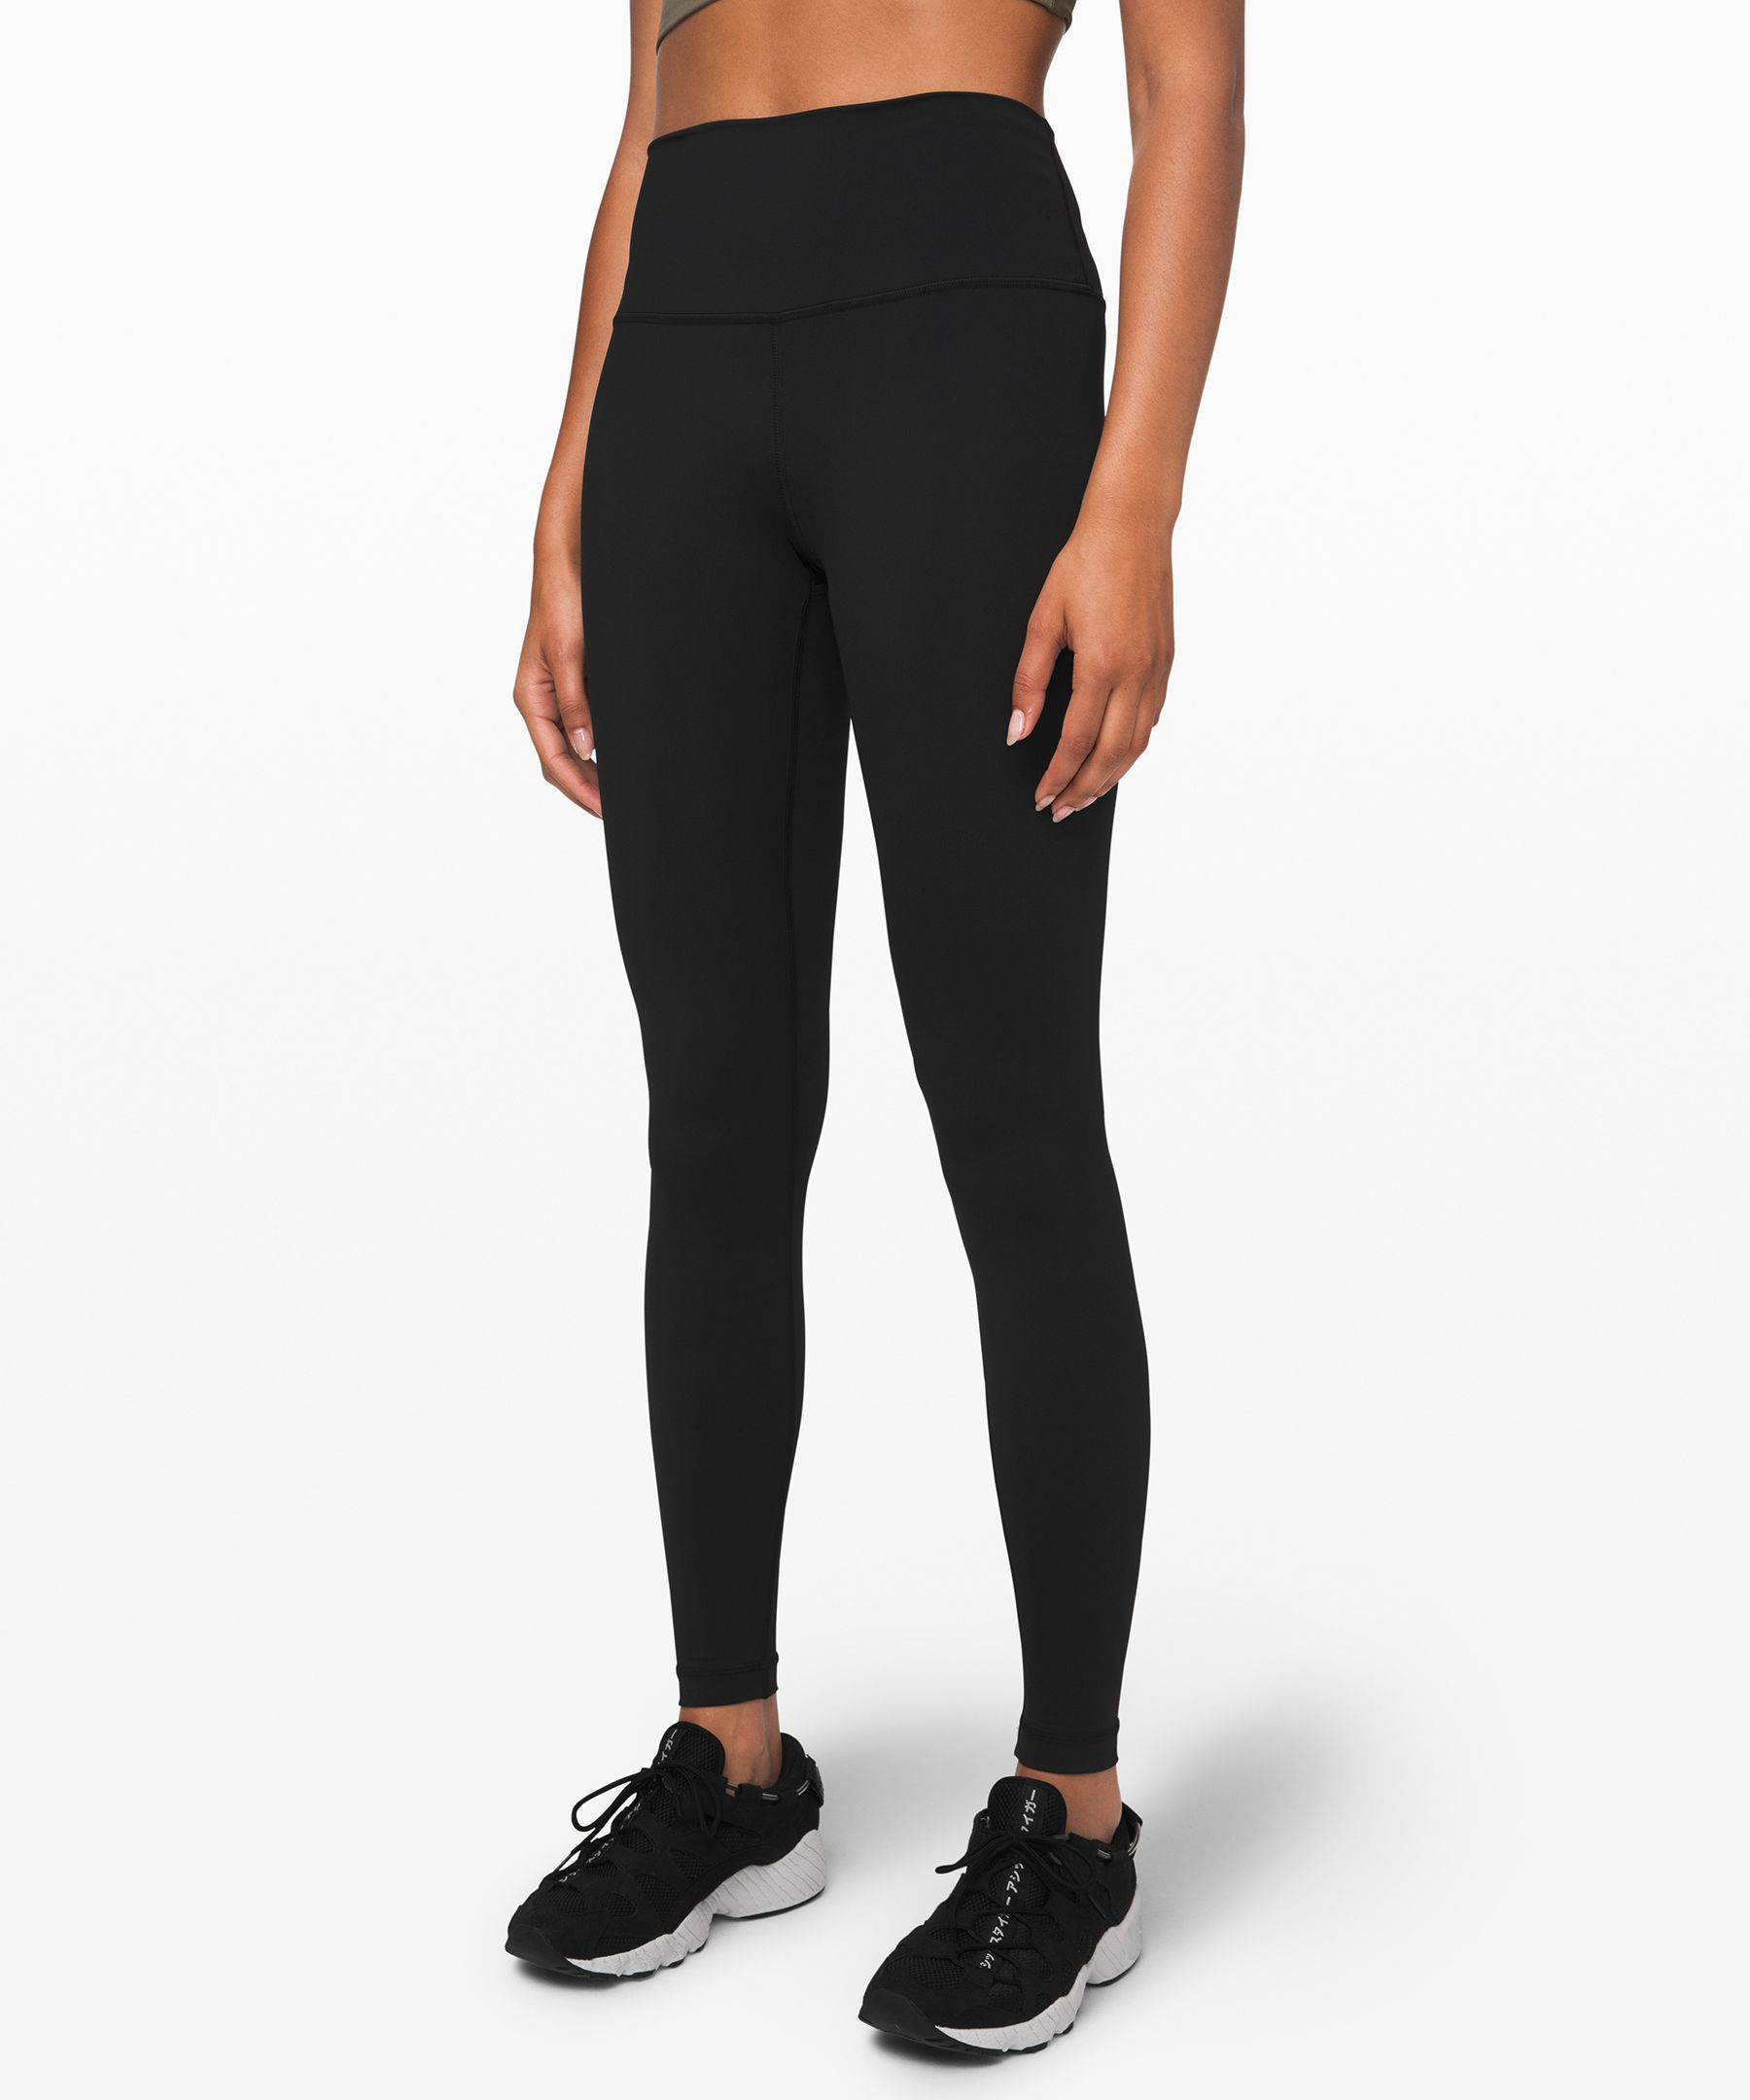 These versatile high-rise  tights were designed to fit  like a second skin—perfect for  yoga or the gym.